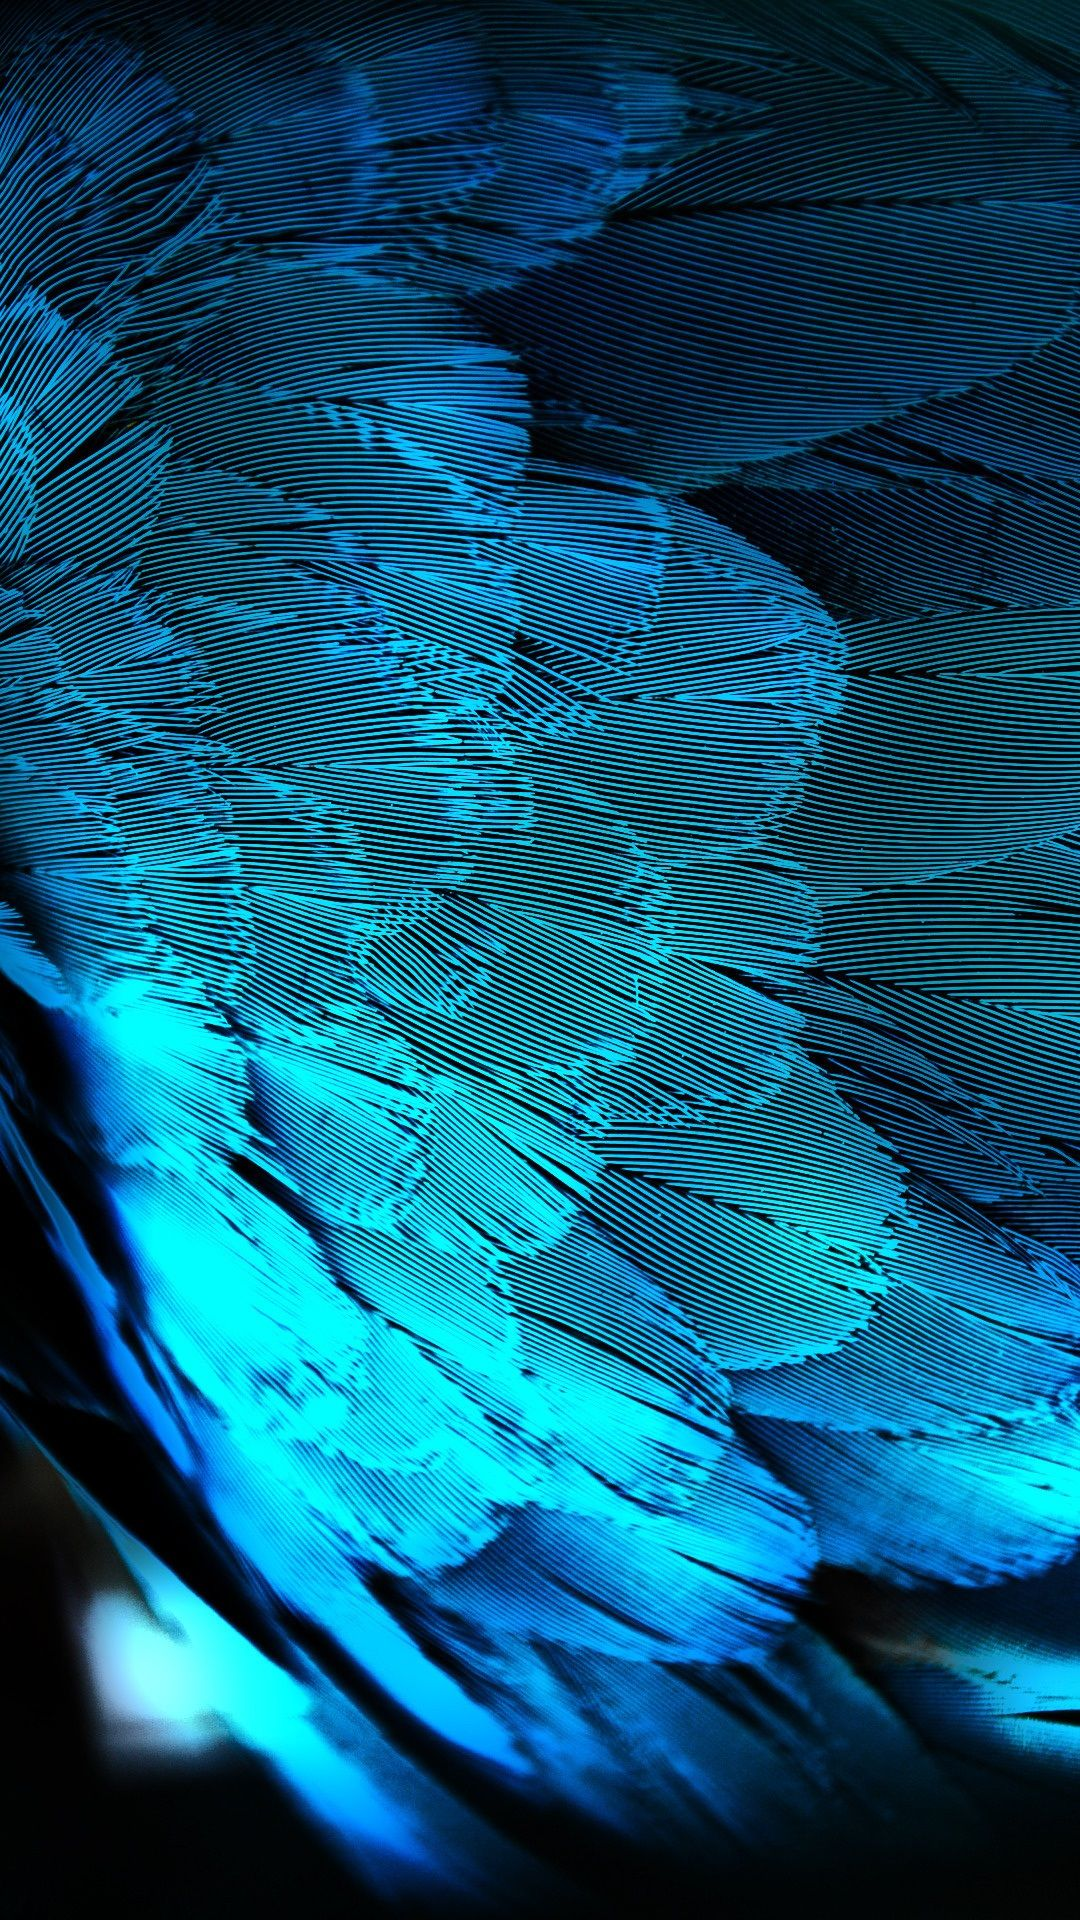 blue hd peacock feathers android wallpaper free download